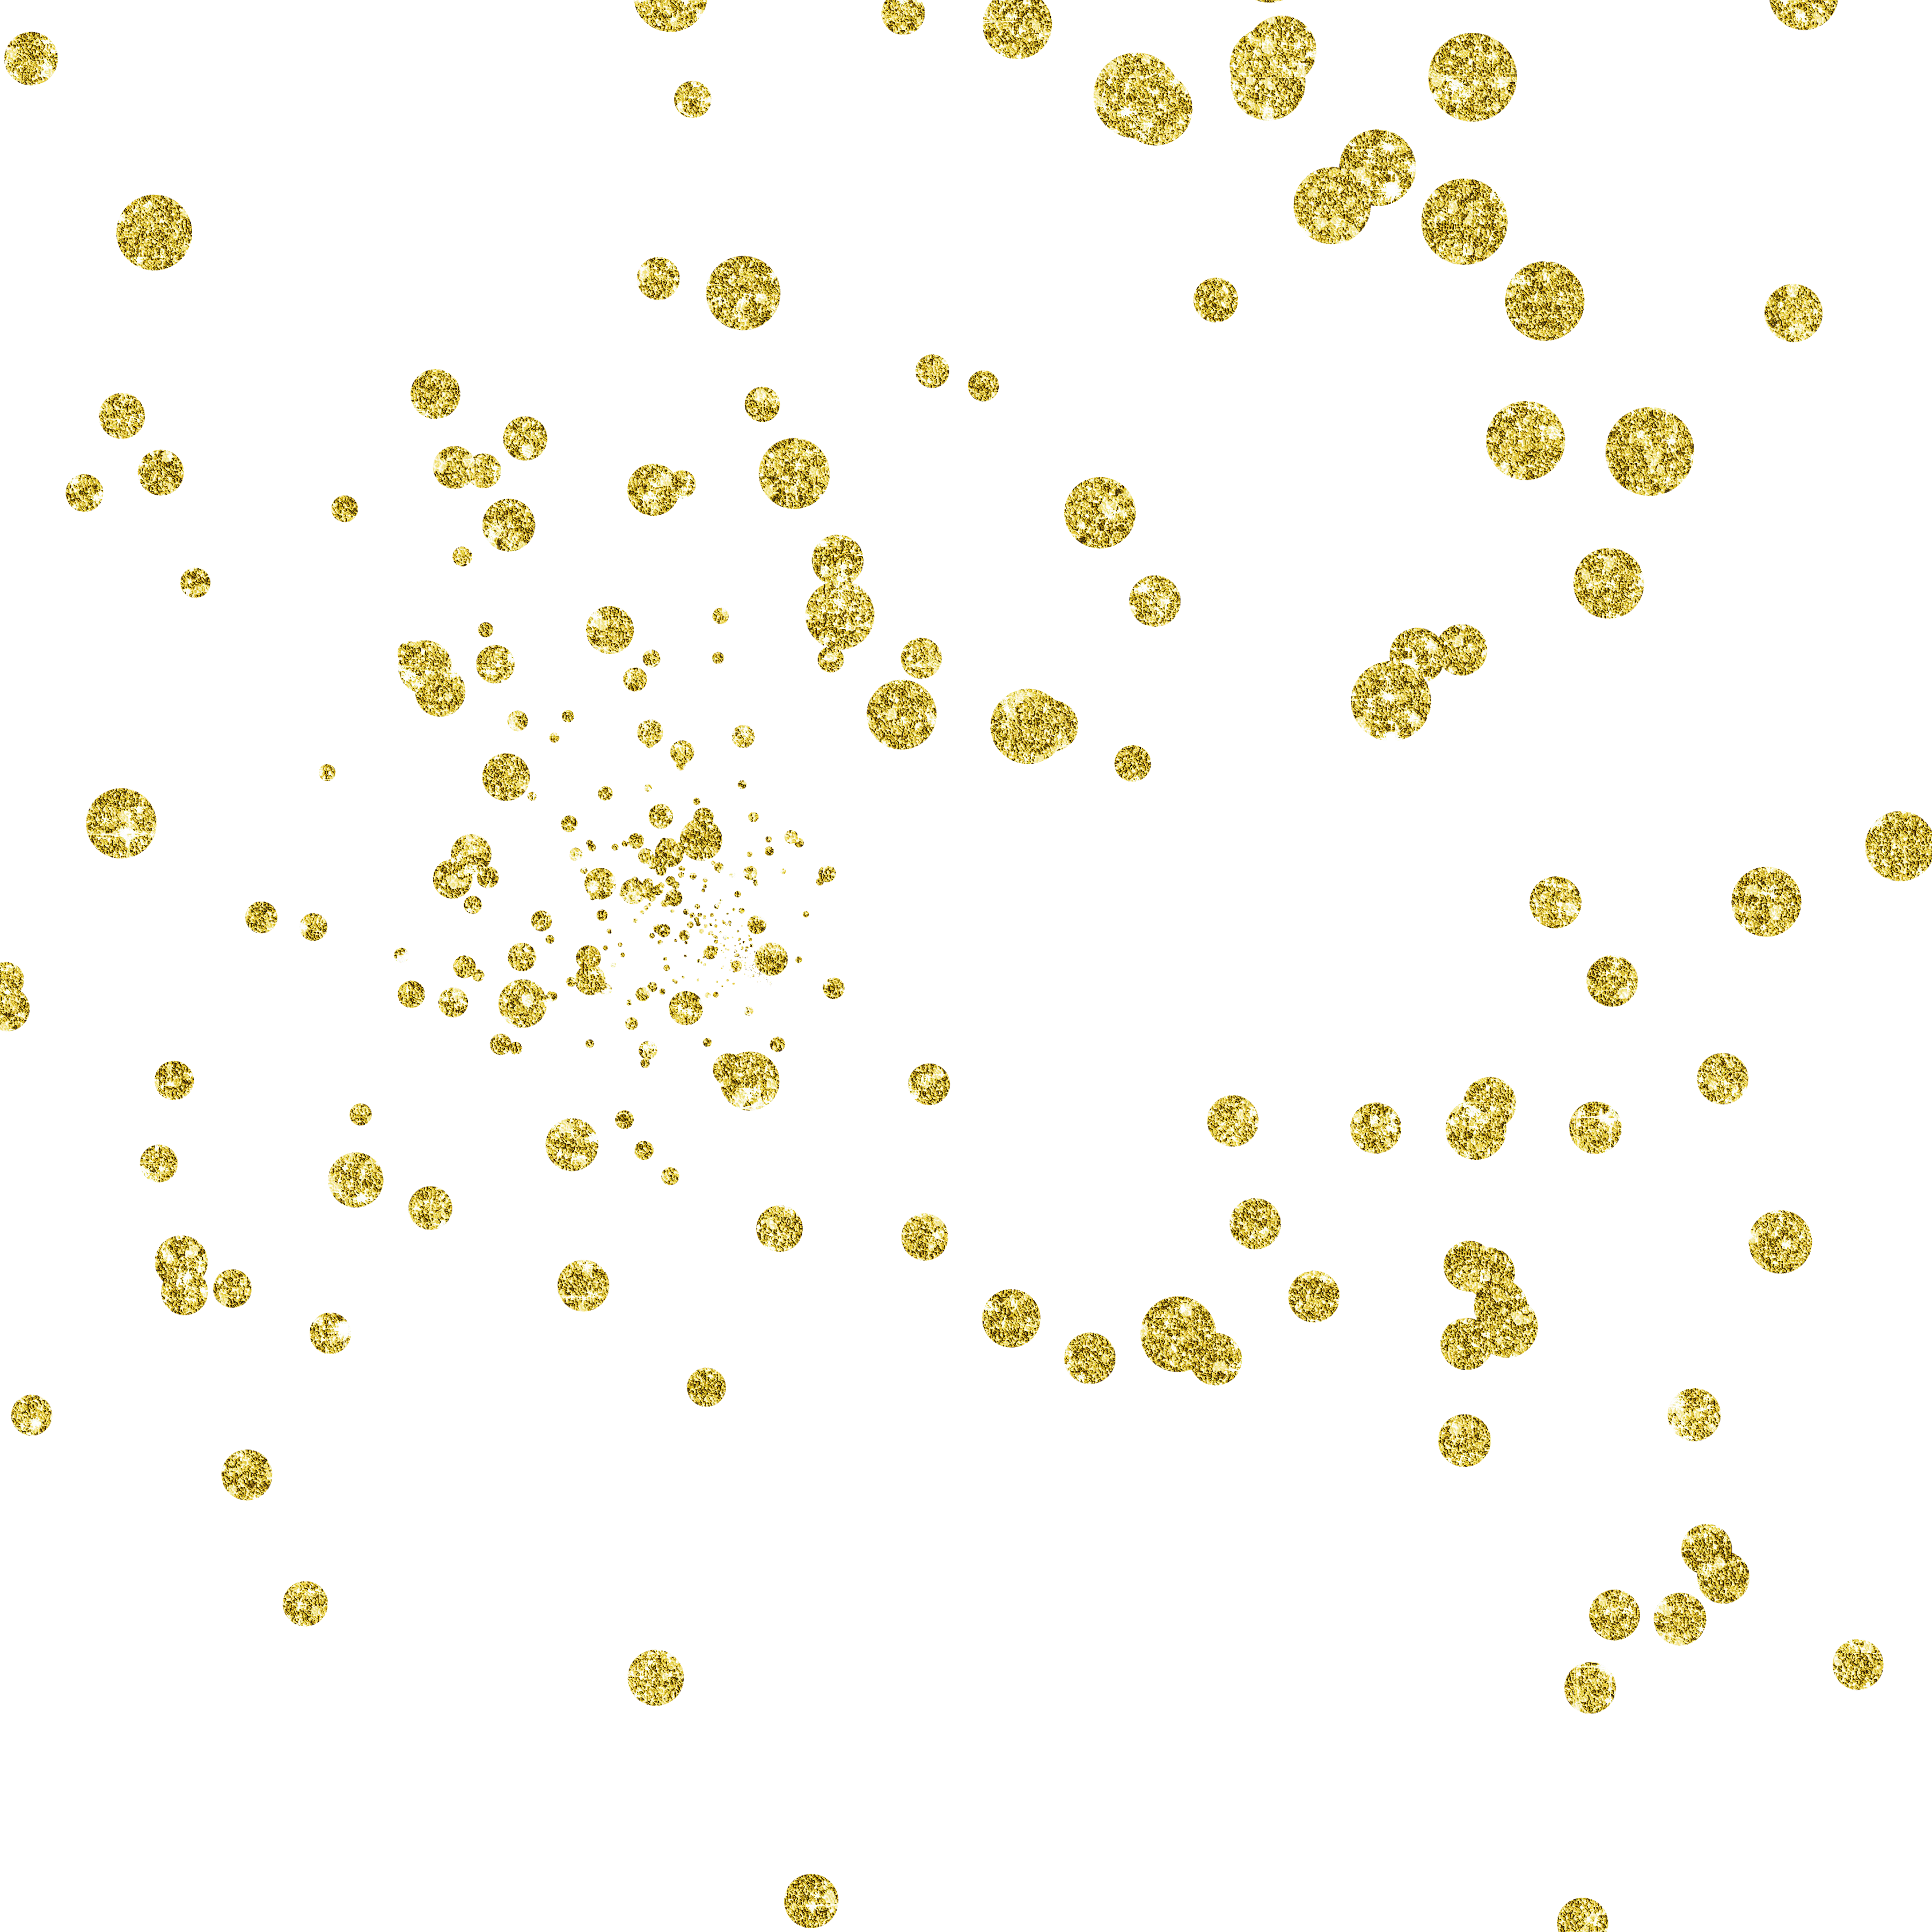 Gold dots png. Point dynamic floating material